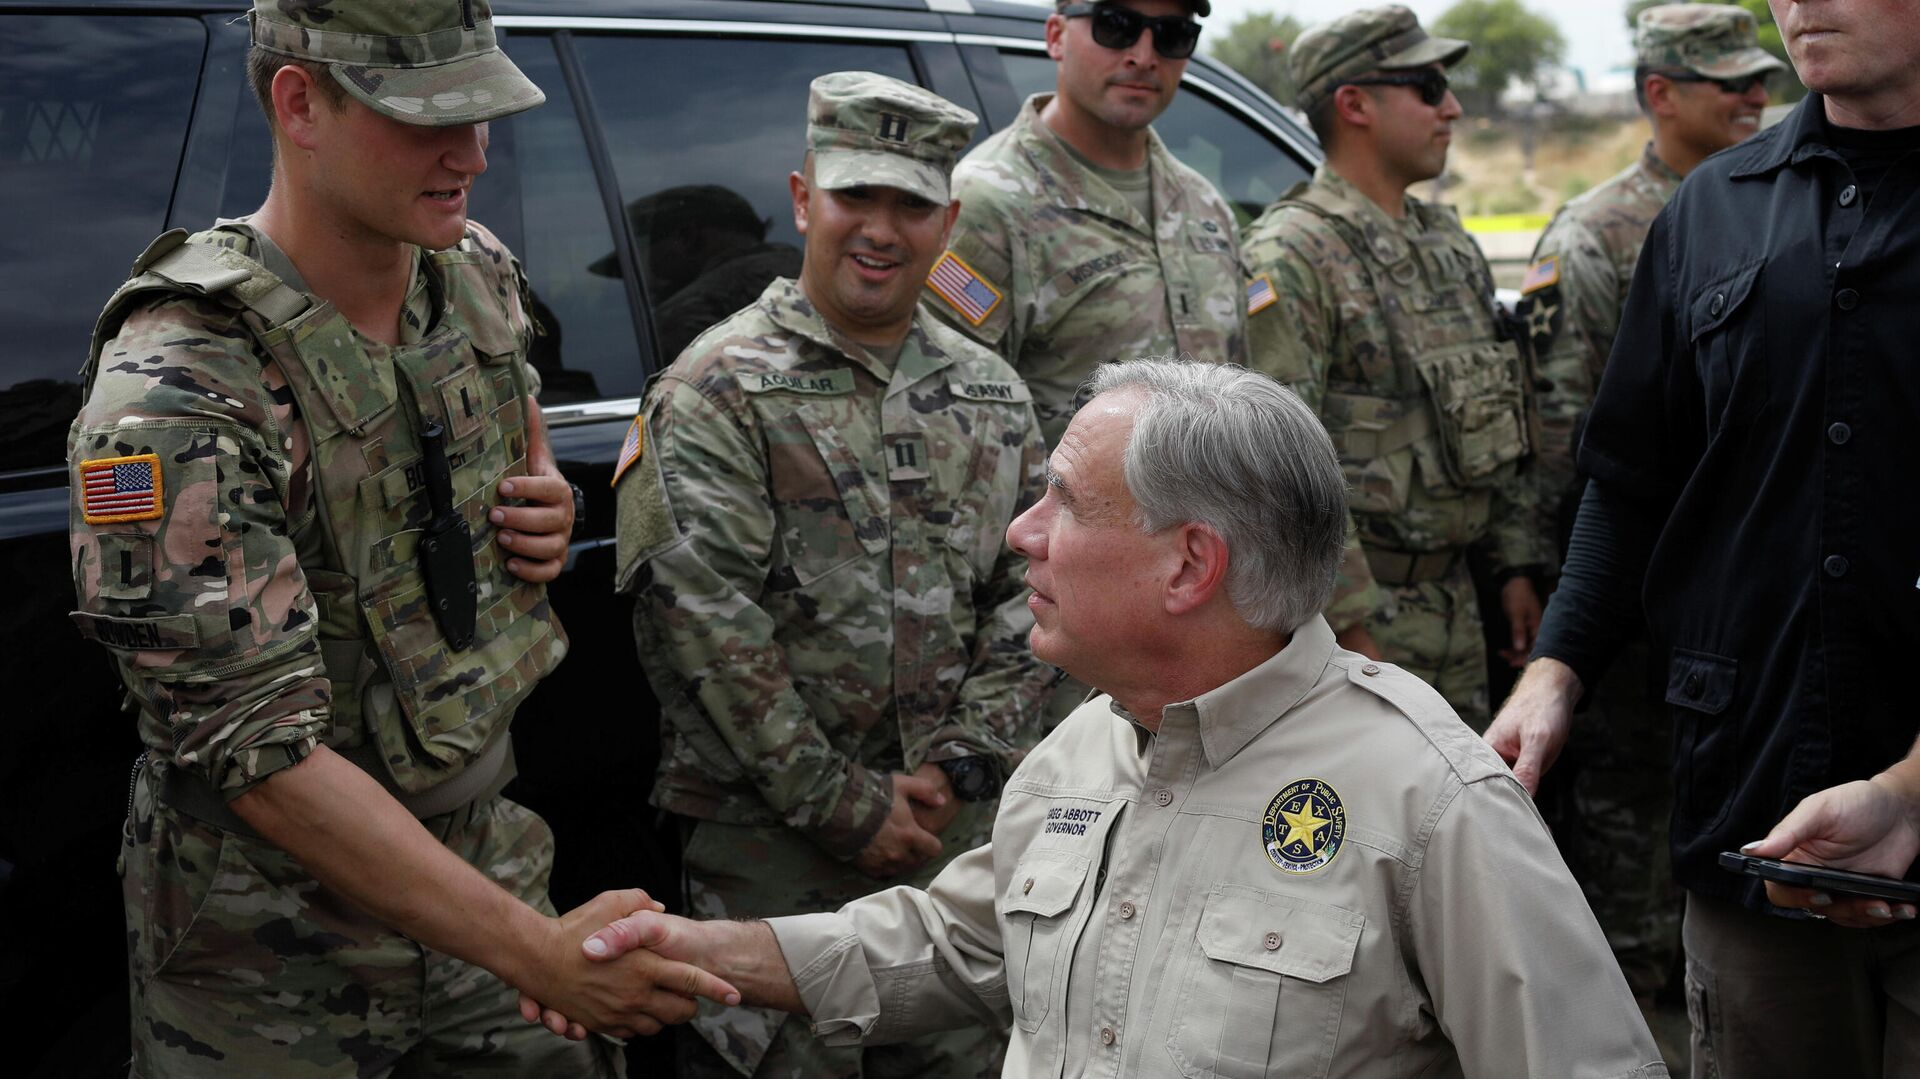 Texas Governor Gregg Abbott shakes hands with a U.S. Soldier after a news conference near the International Bridge between Mexico and the U.S., where migrants seeking asylum in the U.S. are waiting to be processed, in Del Rio, Texas, U.S., September 21, 2021 - Sputnik International, 1920, 23.09.2021